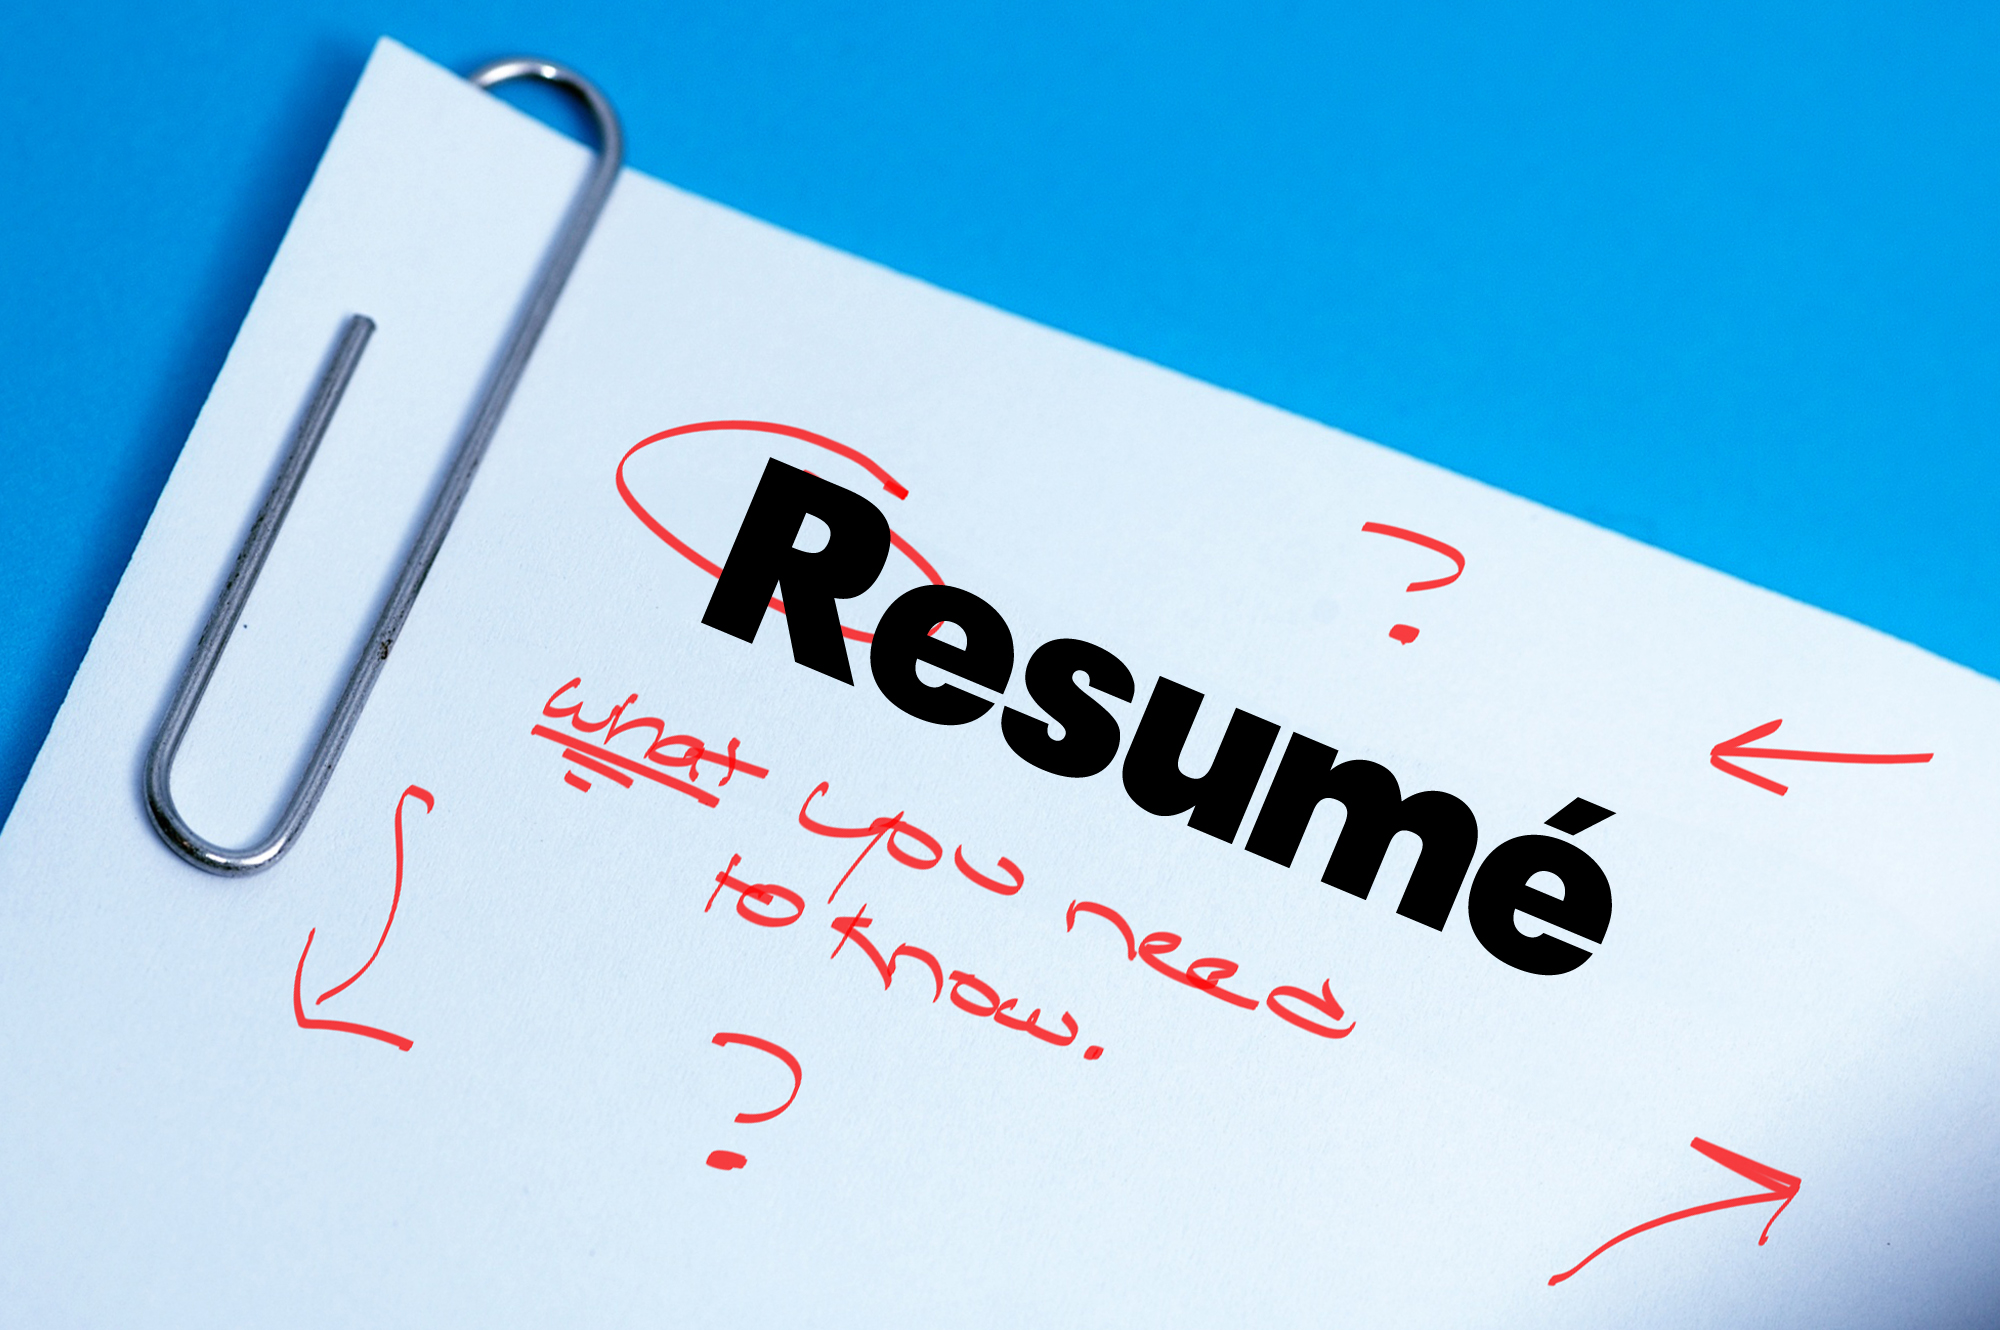 resume Resume Critique critique resume live service best checklist data entry responsibilities